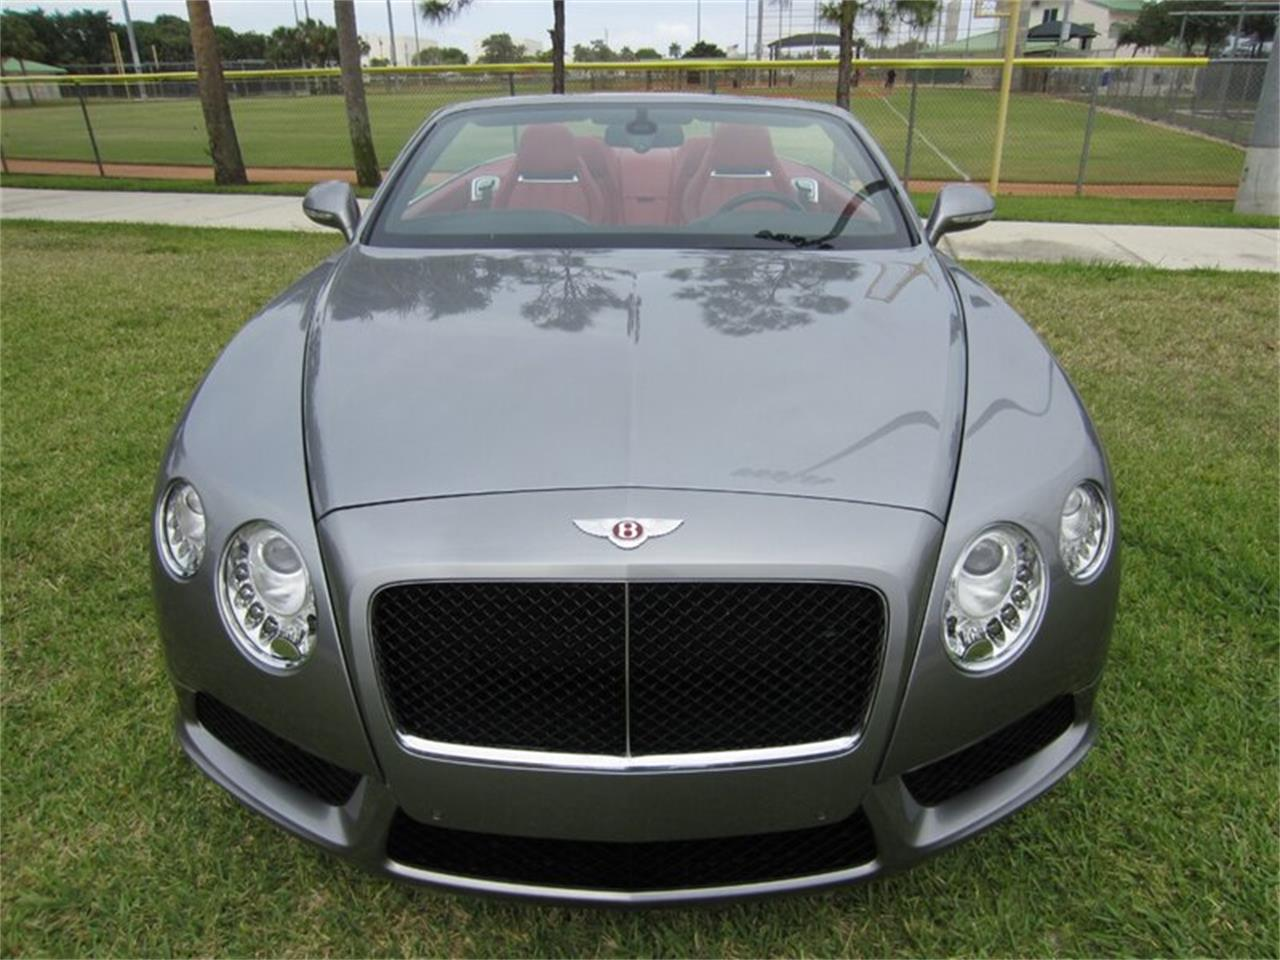 2013 Bentley Continental GTC V8 for sale in Delray Beach, FL – photo 18